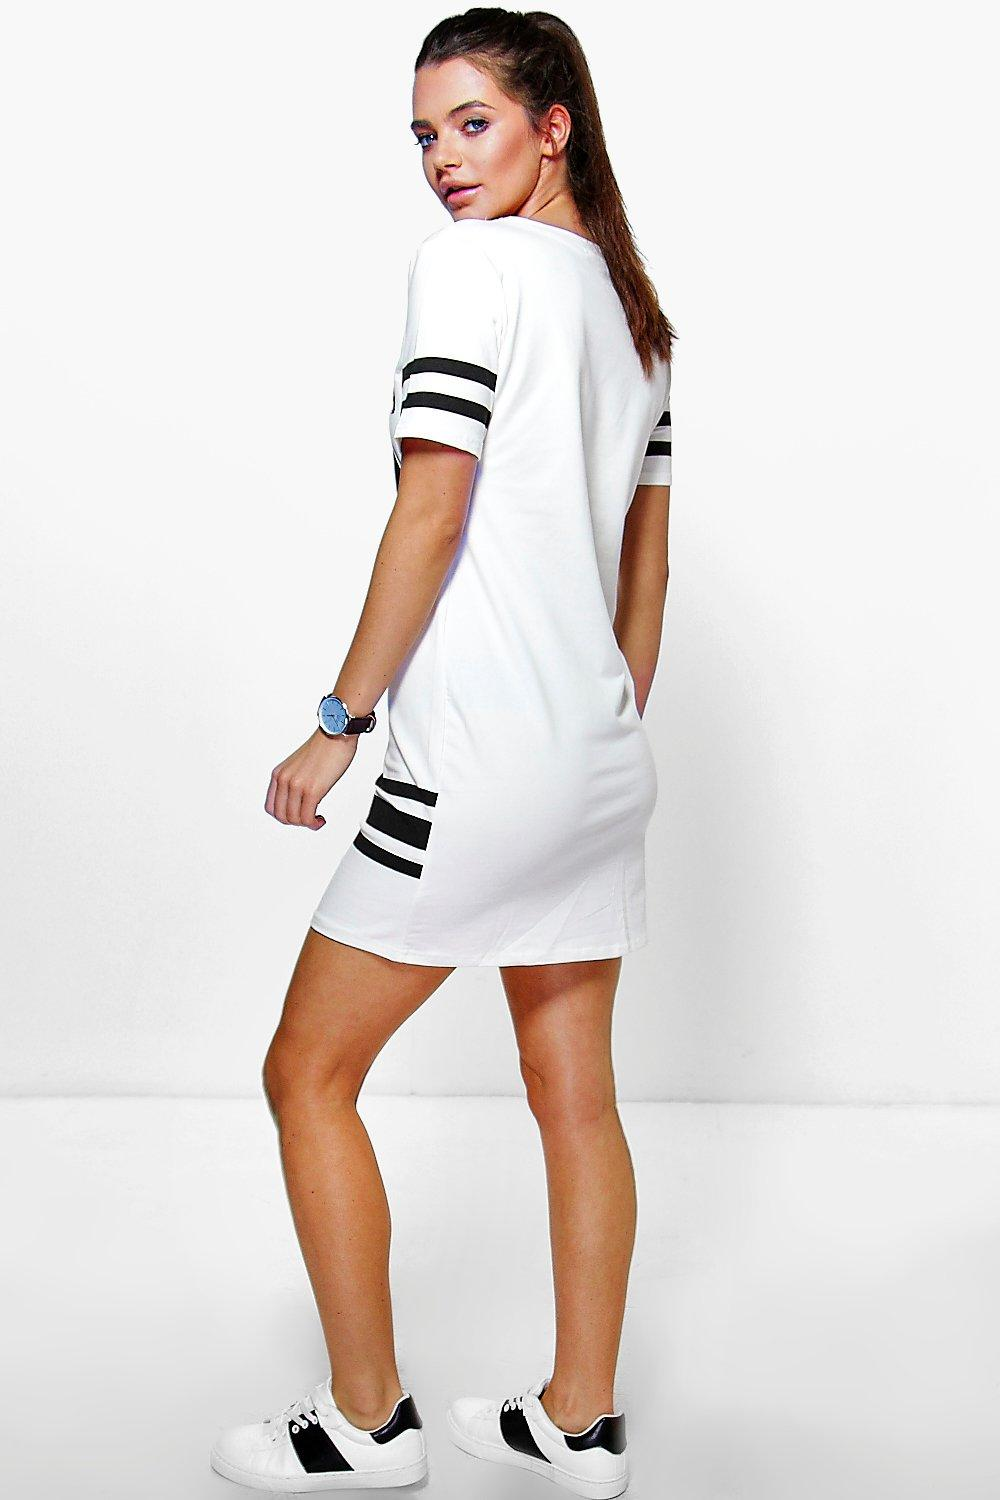 Boohoo womens felicity sports printed t shirt dress ebay for Sporty t shirt dress